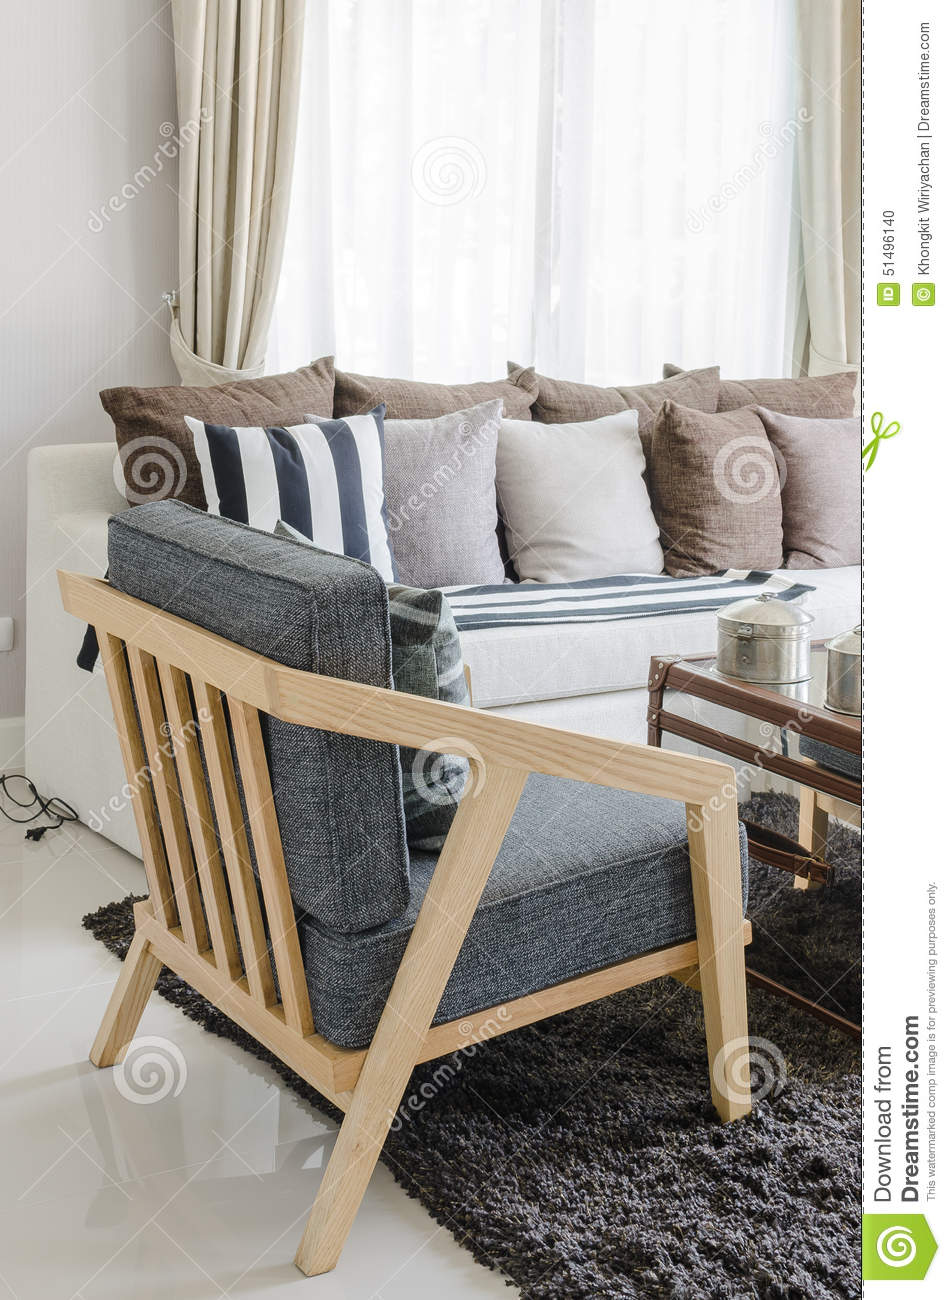 Chaise en bois moderne dans le salon photo stock image - Grand tapis de salon pas cher ...